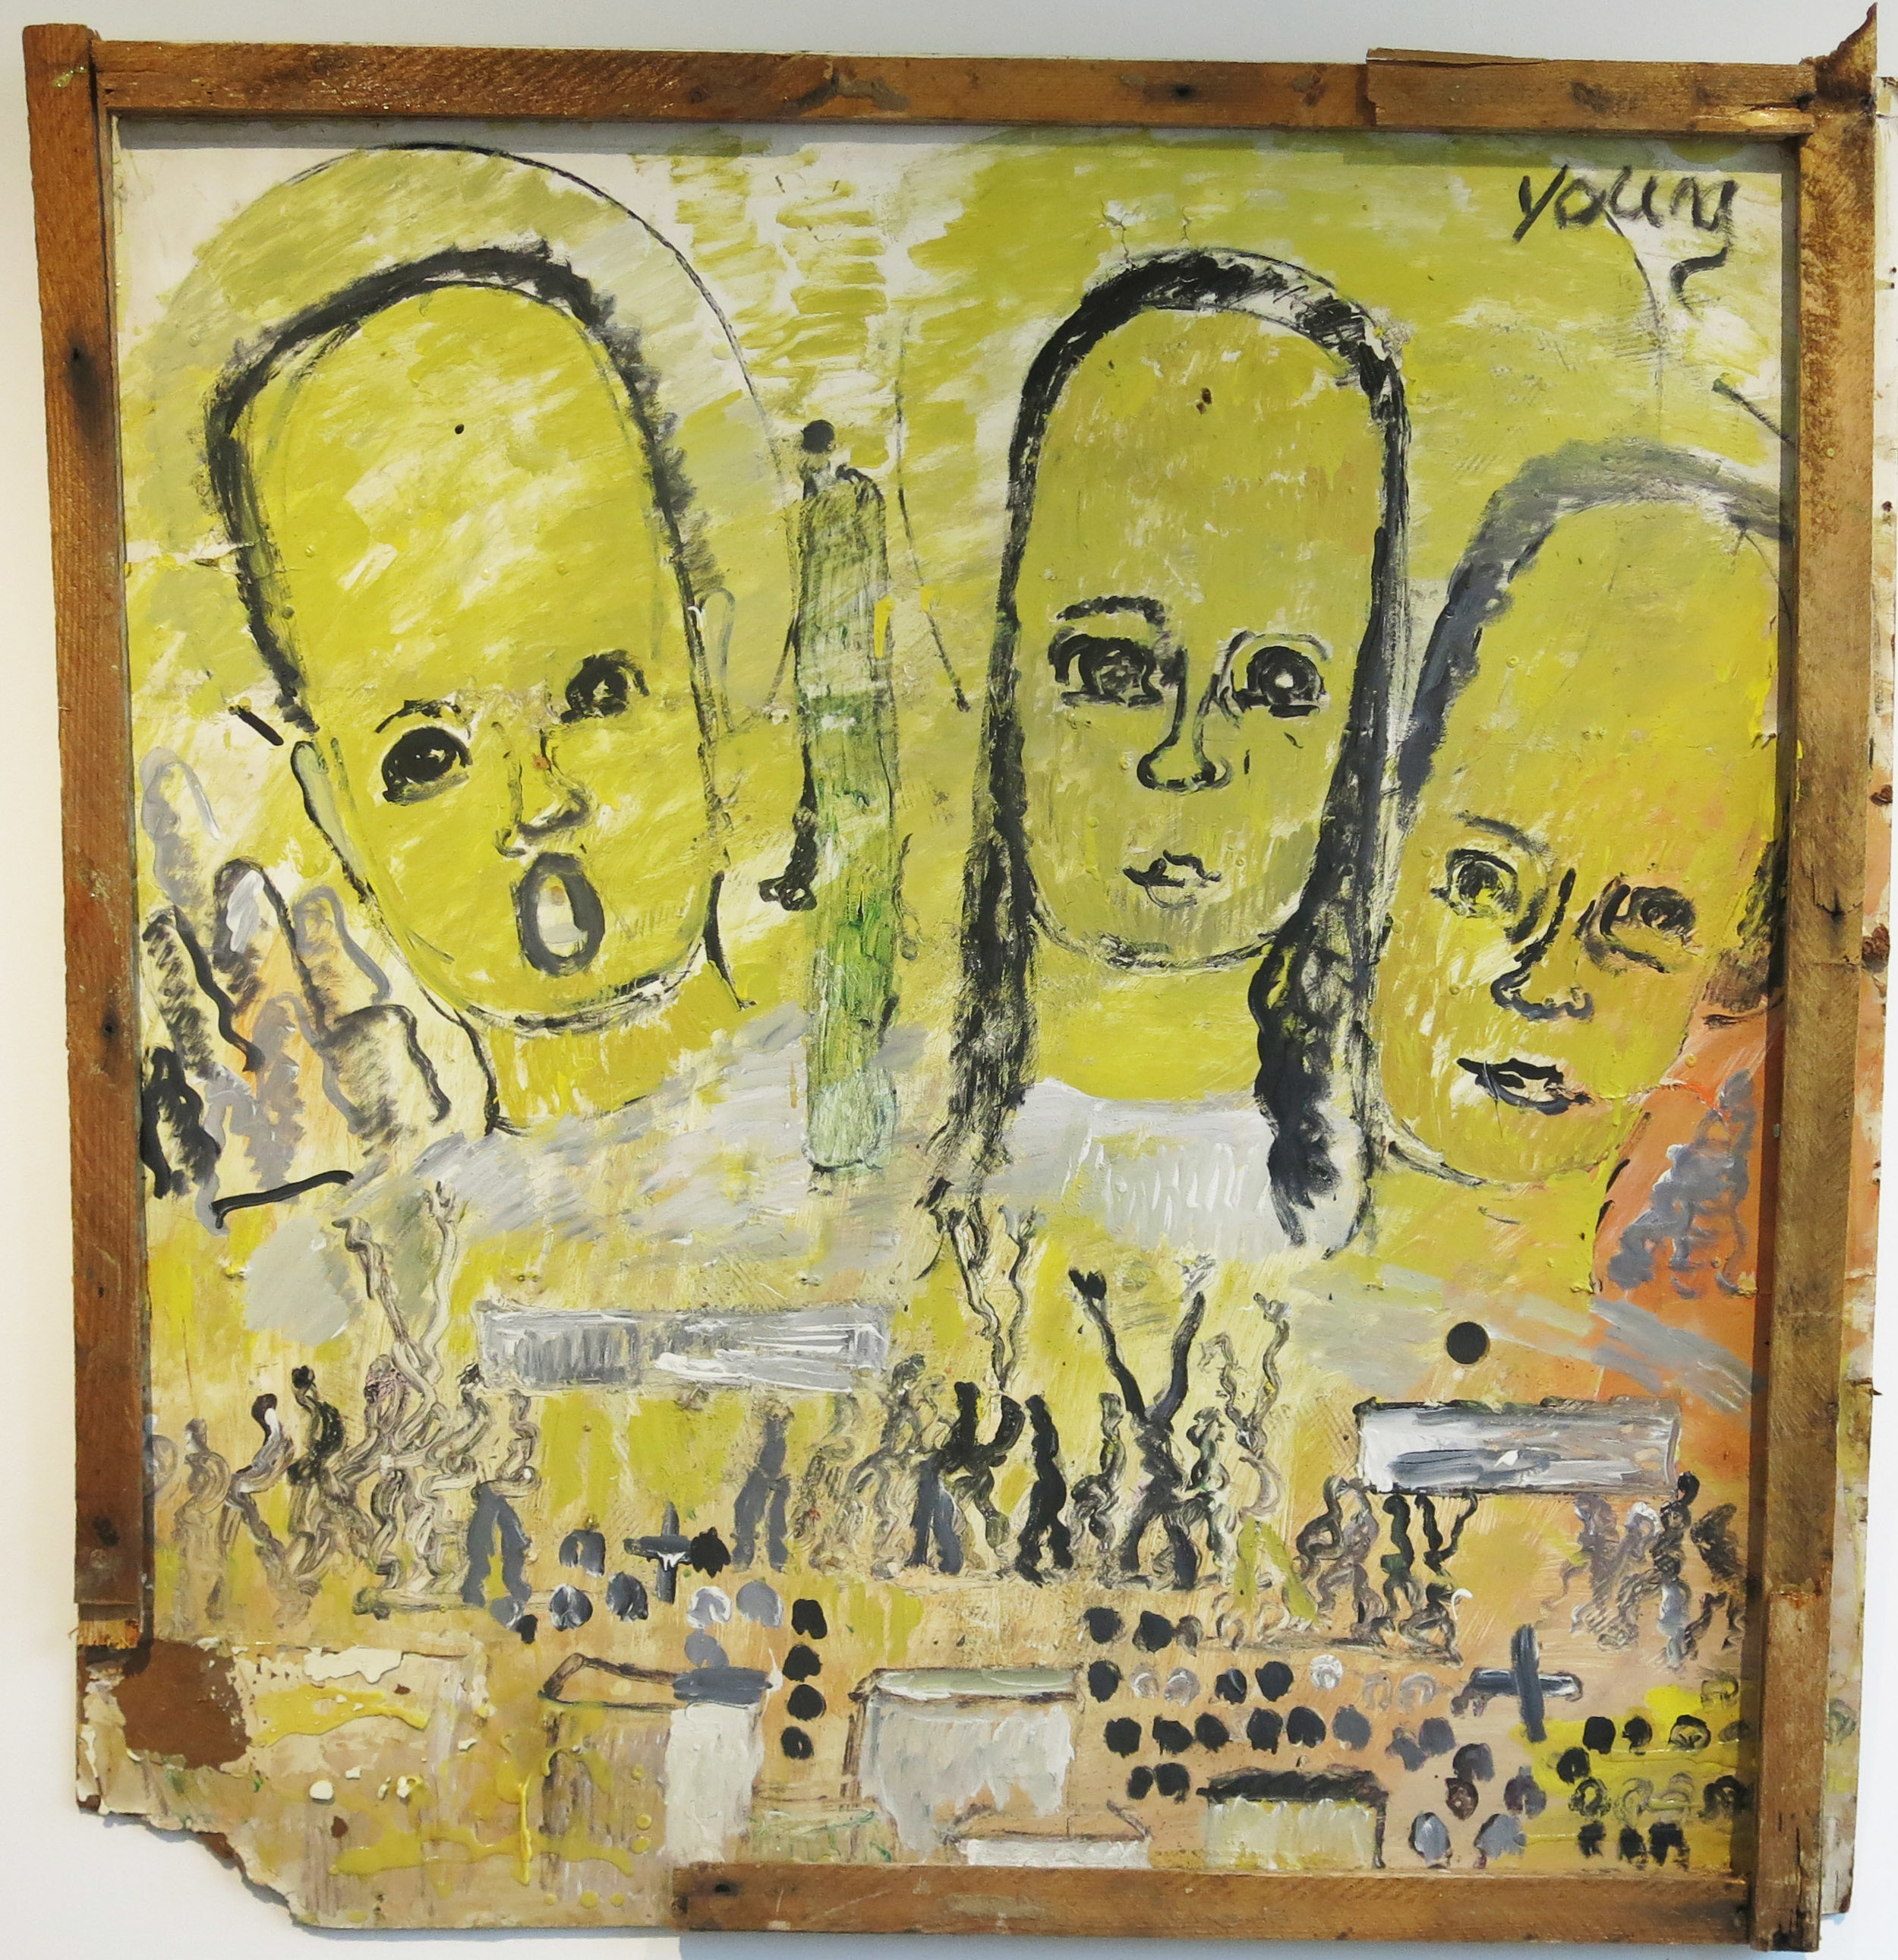 Purvis Young, Untitled, late 1980's, oil on board, 43h x 41.5w in.